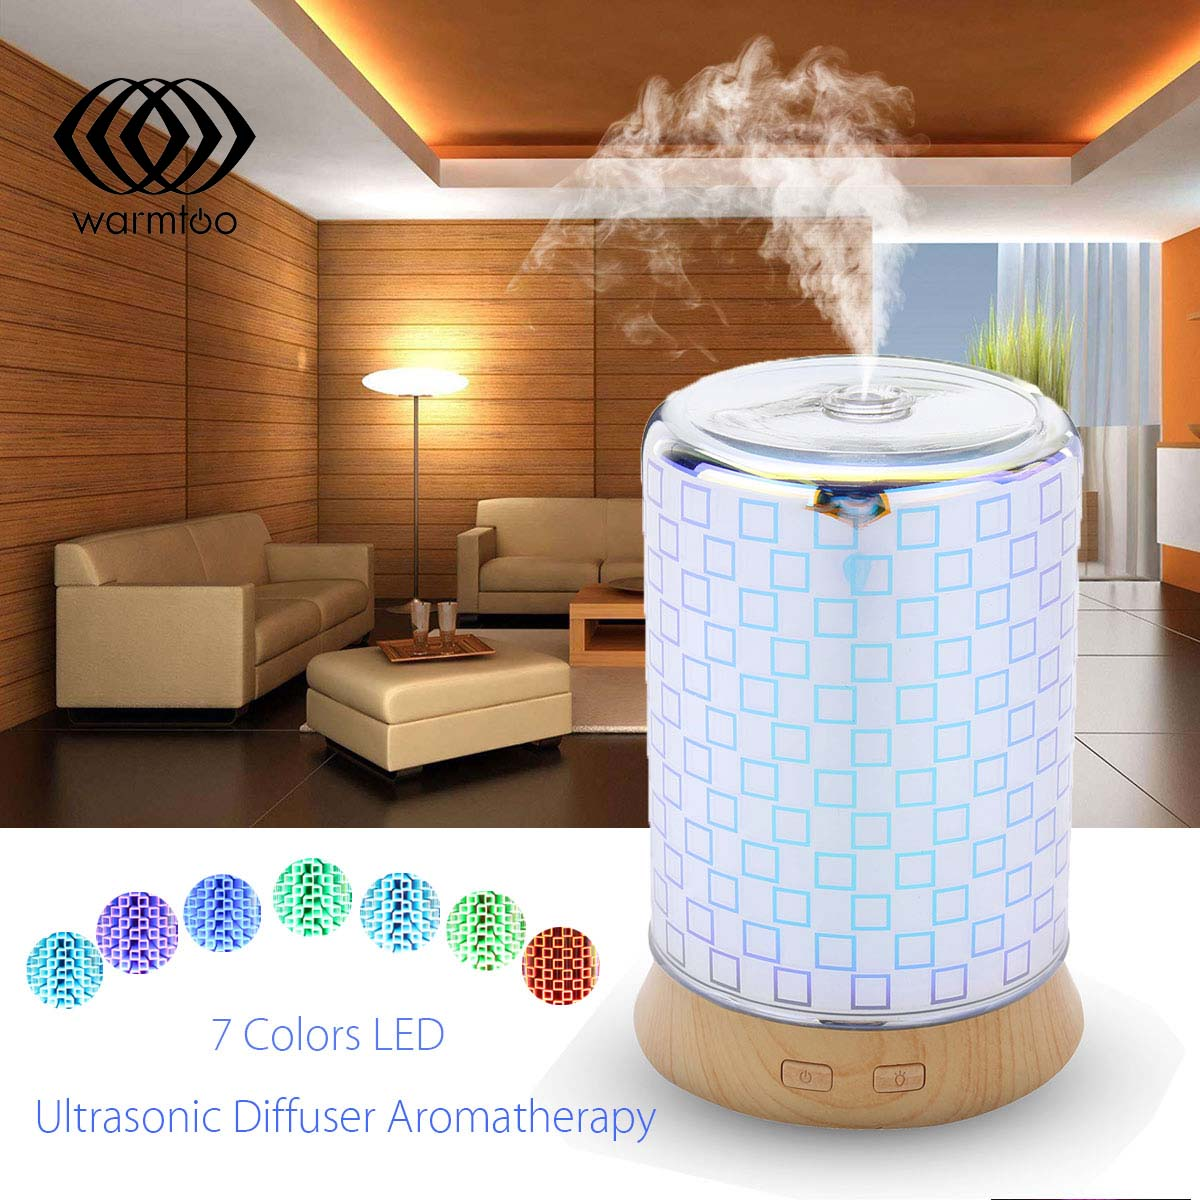 100ml 3D Effect Air Aroma Humidifier Essential Oil Aroma Diffuser Ultrasonic Aromatherapy Diffuser with 7 Color Lights Changing сувениры aroma garden лампа 3d волокно синий